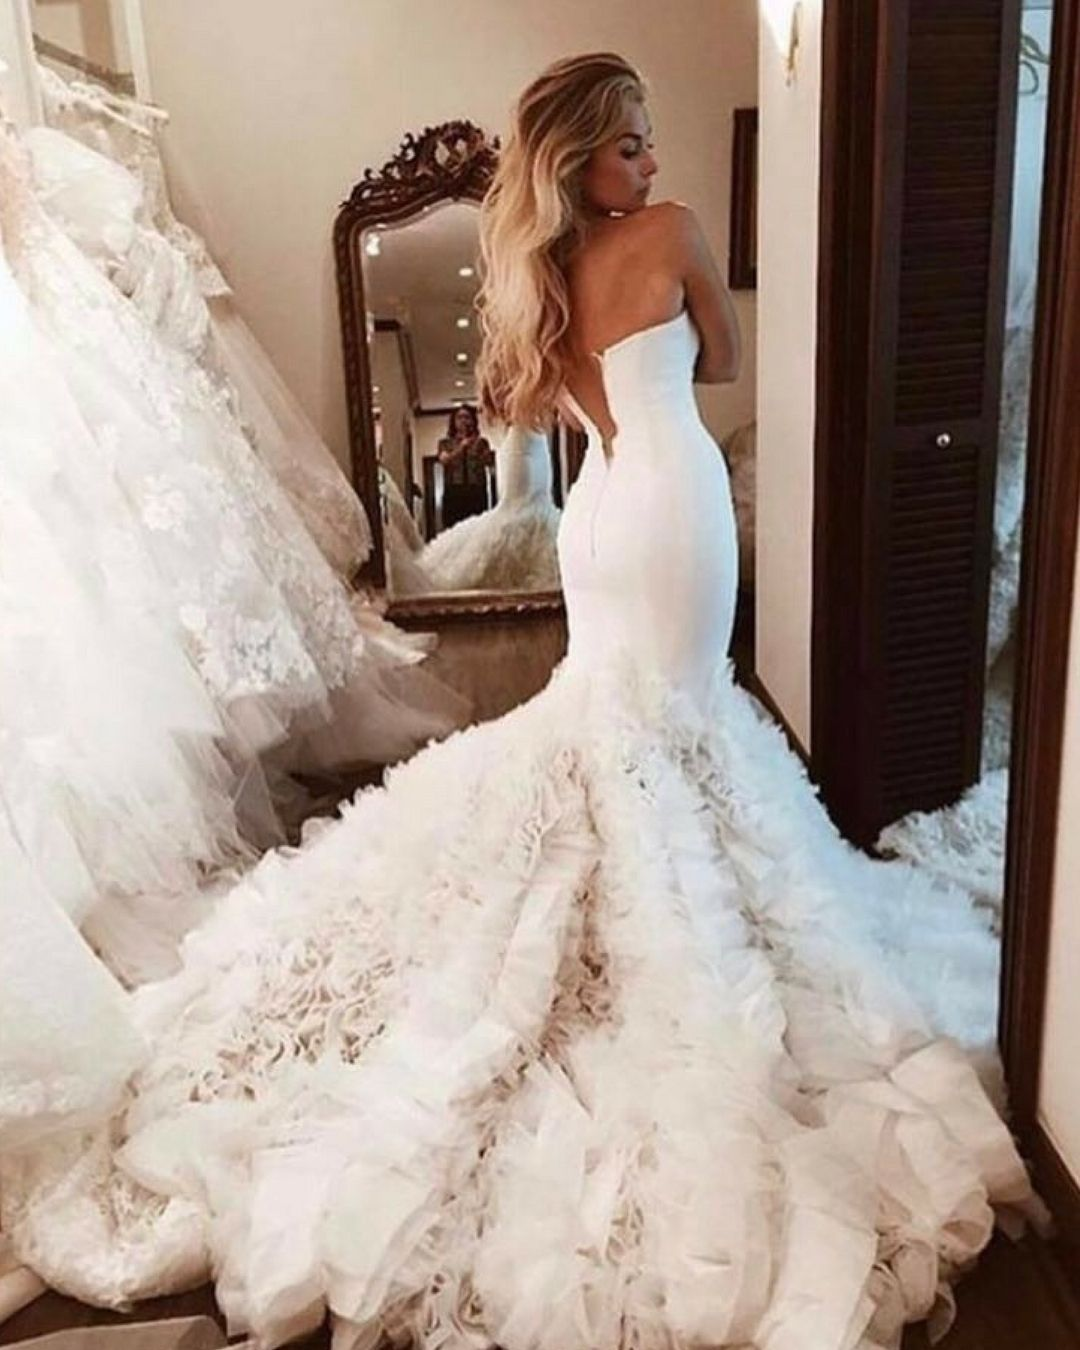 Wedding Dress Tips - What You Should Consider